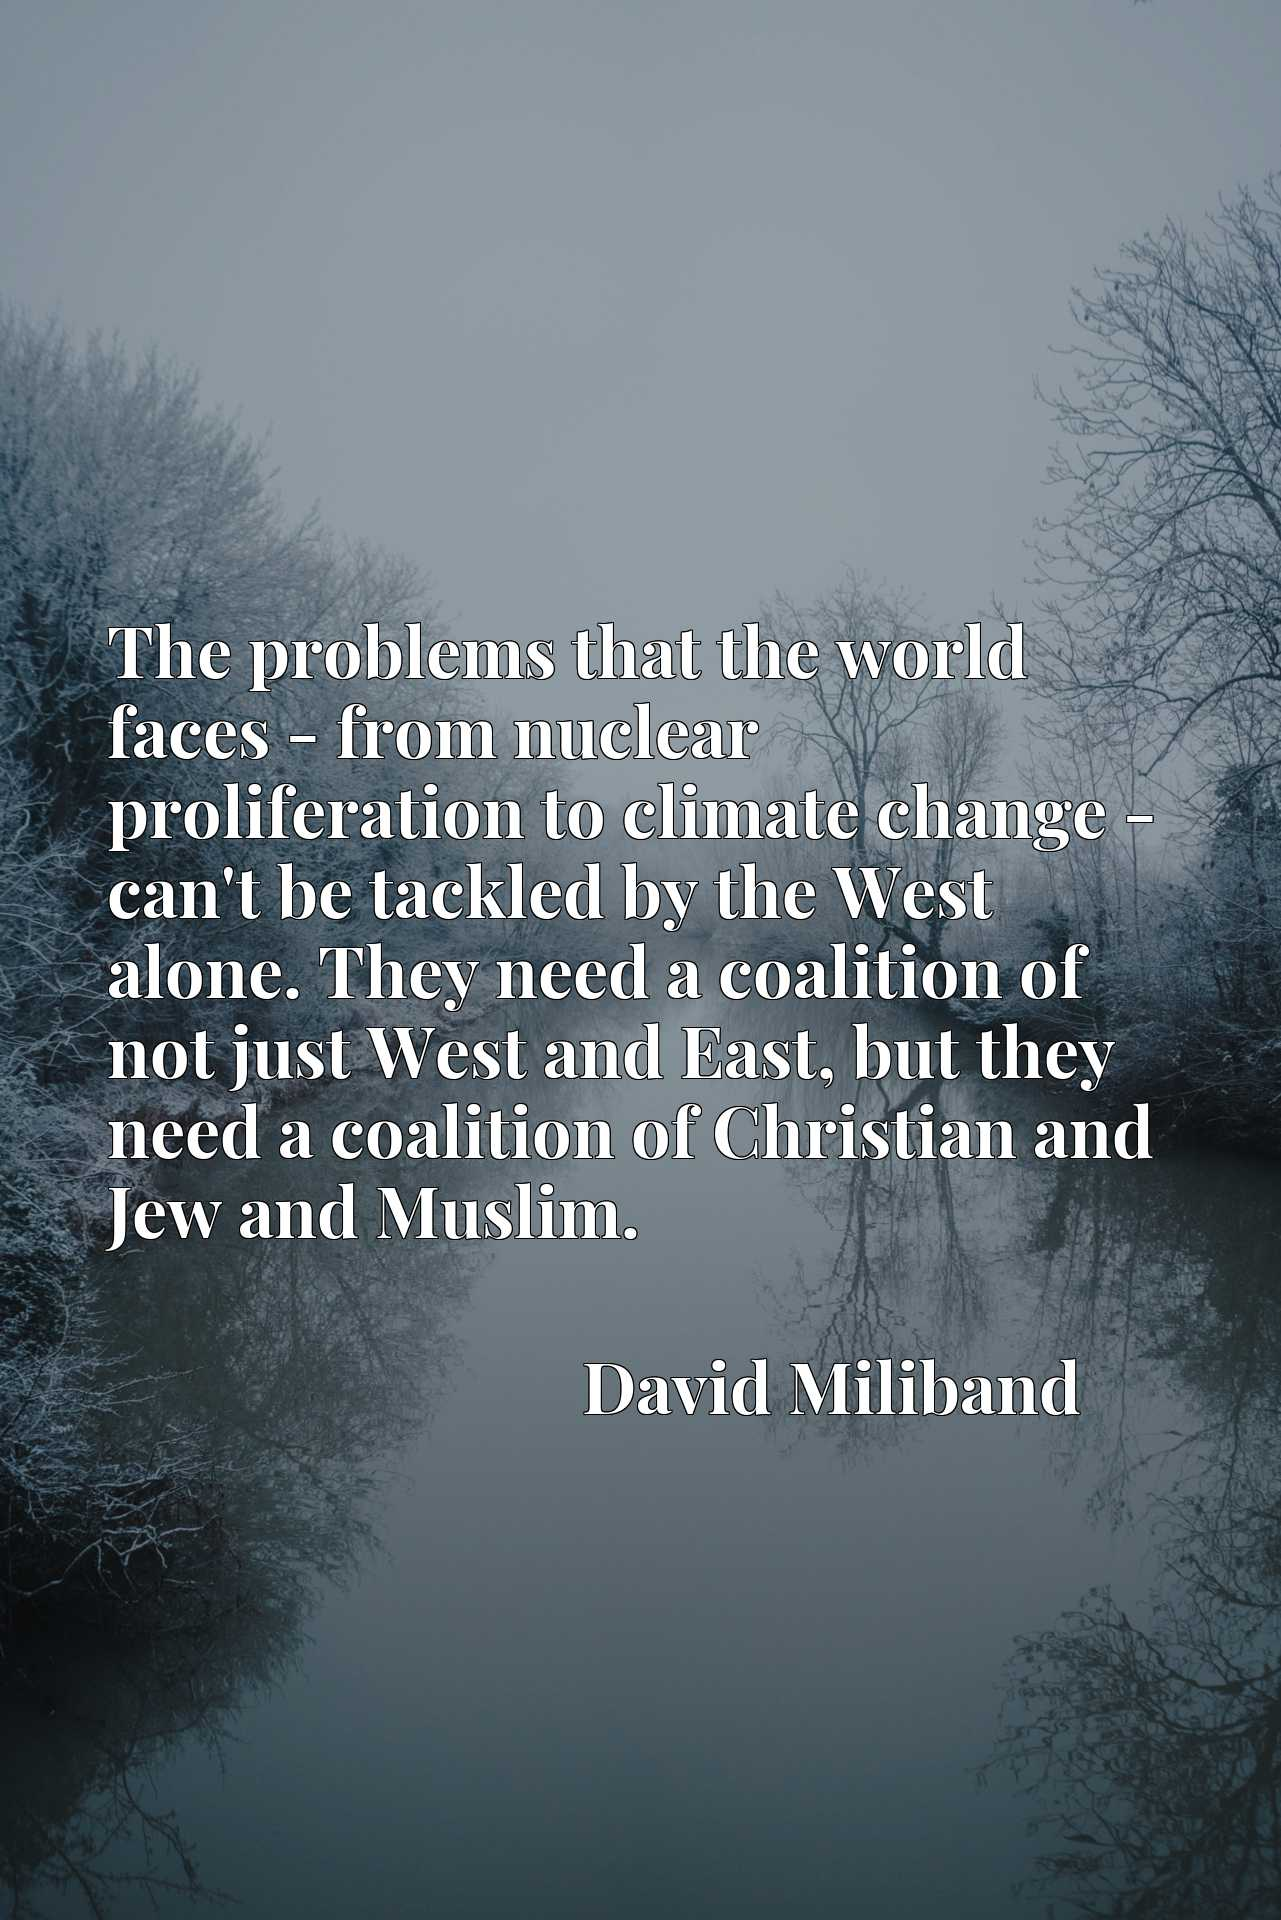 The problems that the world faces - from nuclear proliferation to climate change - can't be tackled by the West alone. They need a coalition of not just West and East, but they need a coalition of Christian and Jew and Muslim.